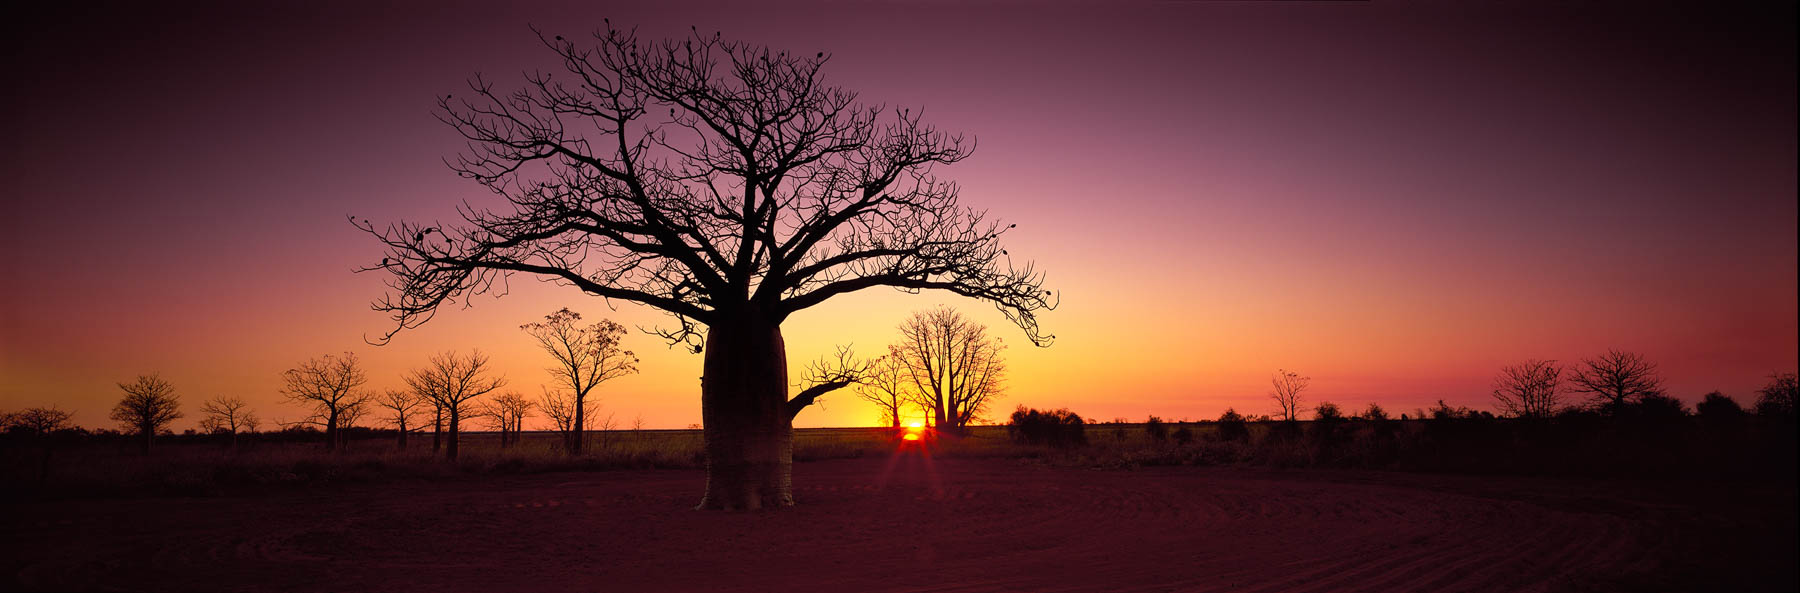 Boab trees silhouetted against a glowing purple sunset near Derby airport, WA, Australia.